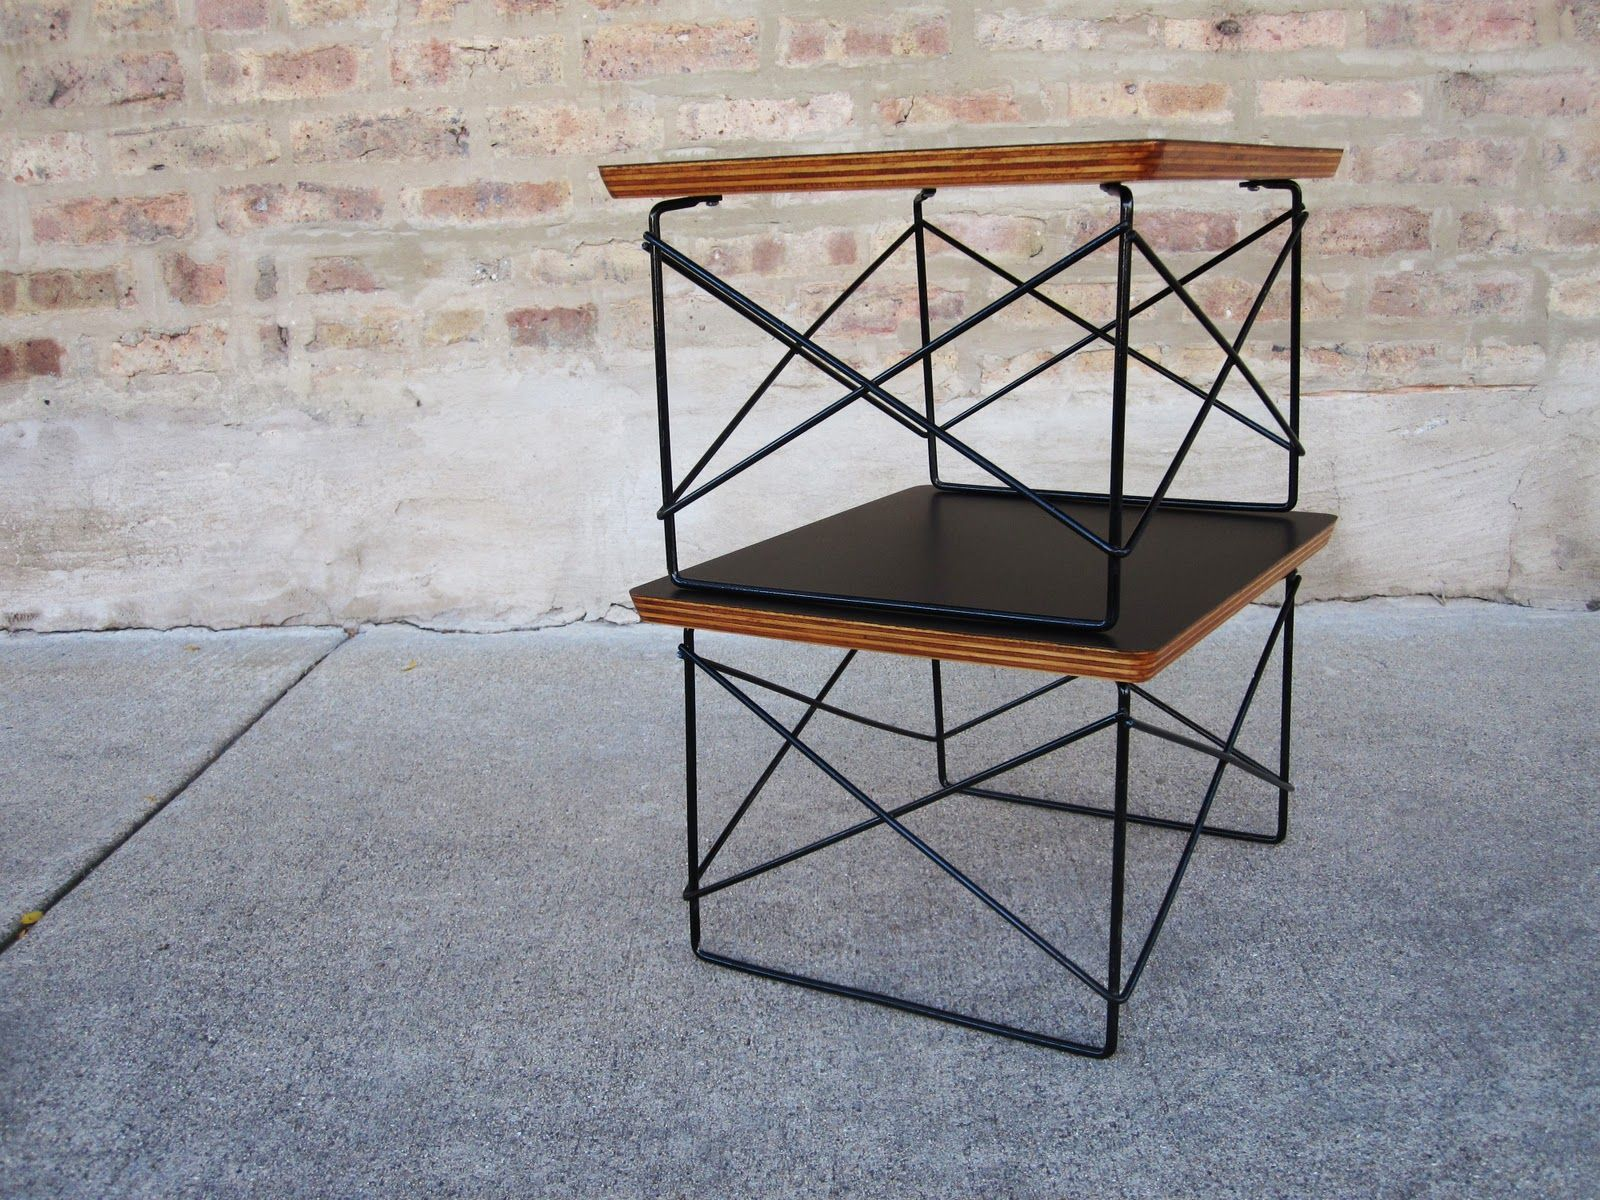 Eames sidetable ltr vindustrial shelter pinterest interiors sold w x d x h these are eames wire base ltr tables reminiscent of the eiffel chair these small tables could be used as keyboard keysfo Gallery